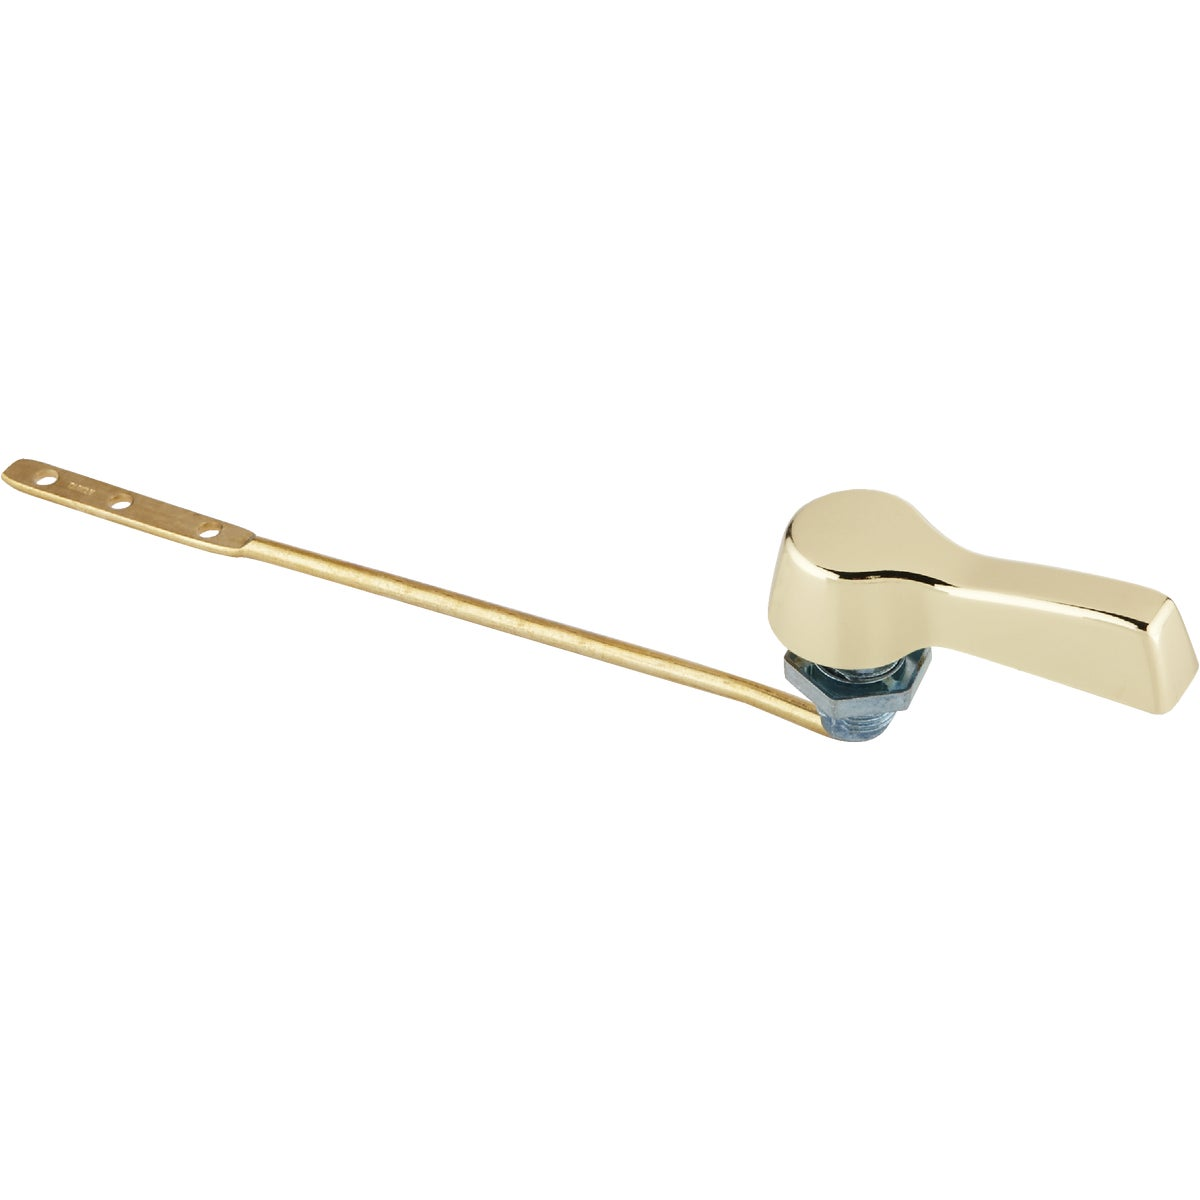 POLISHED BRS FLUSH LEVER - 091213 by Do it Best